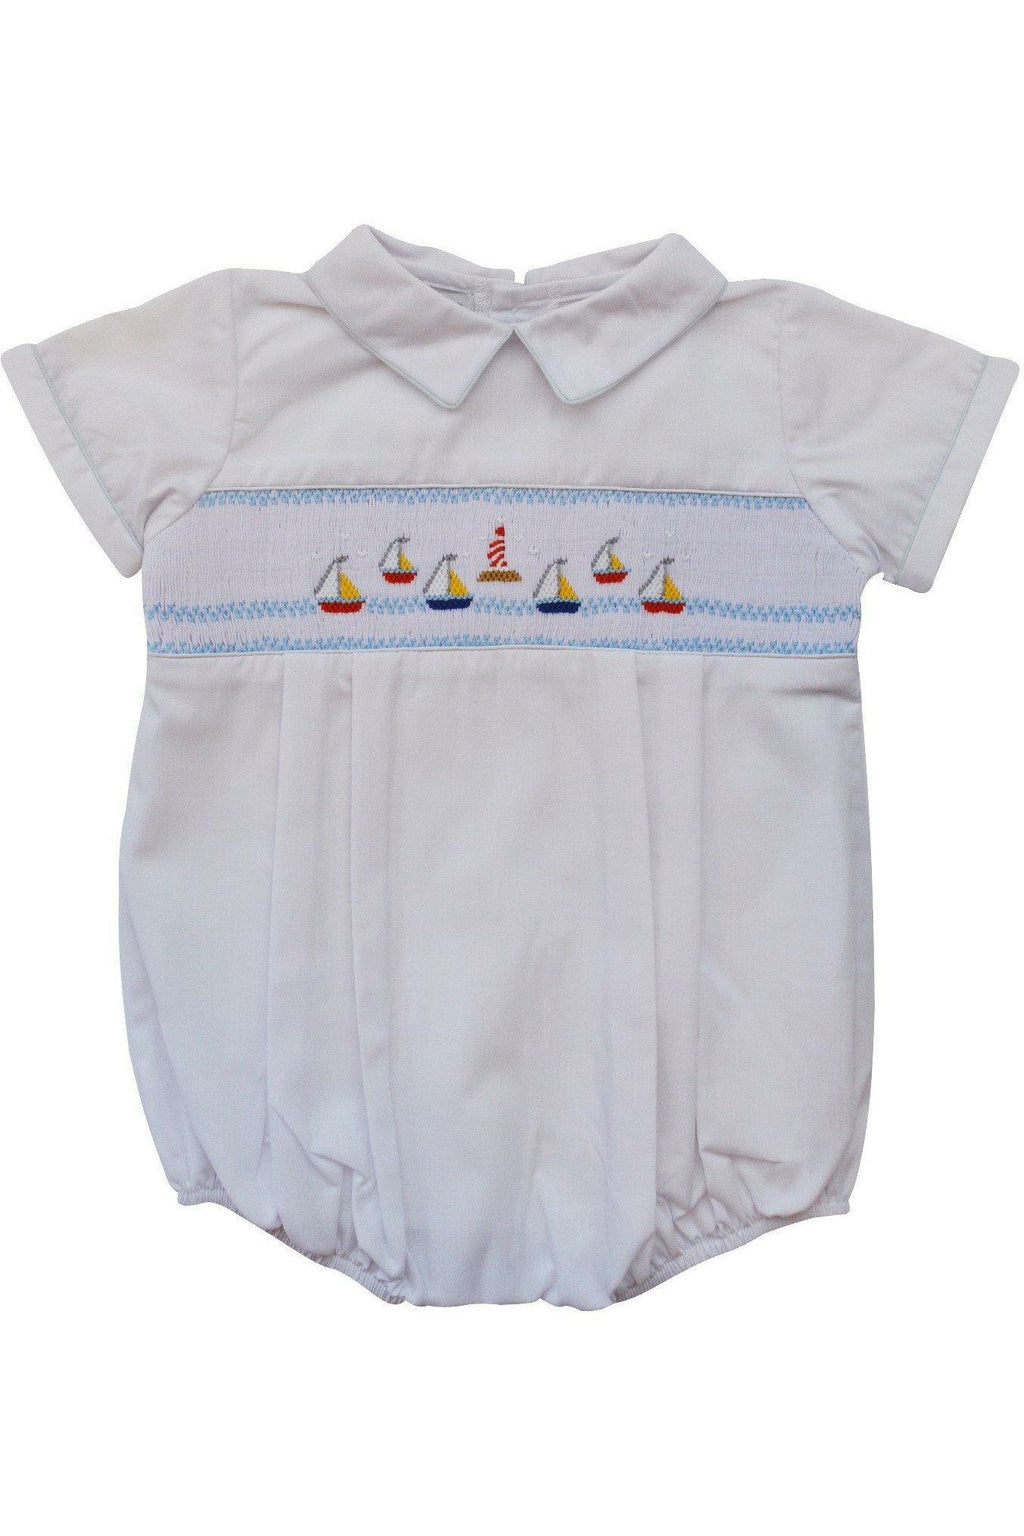 Baby Boys Hand Smocked Classic Creeper - White Mini Sail Boats [product_tags] - Carriage Boutique